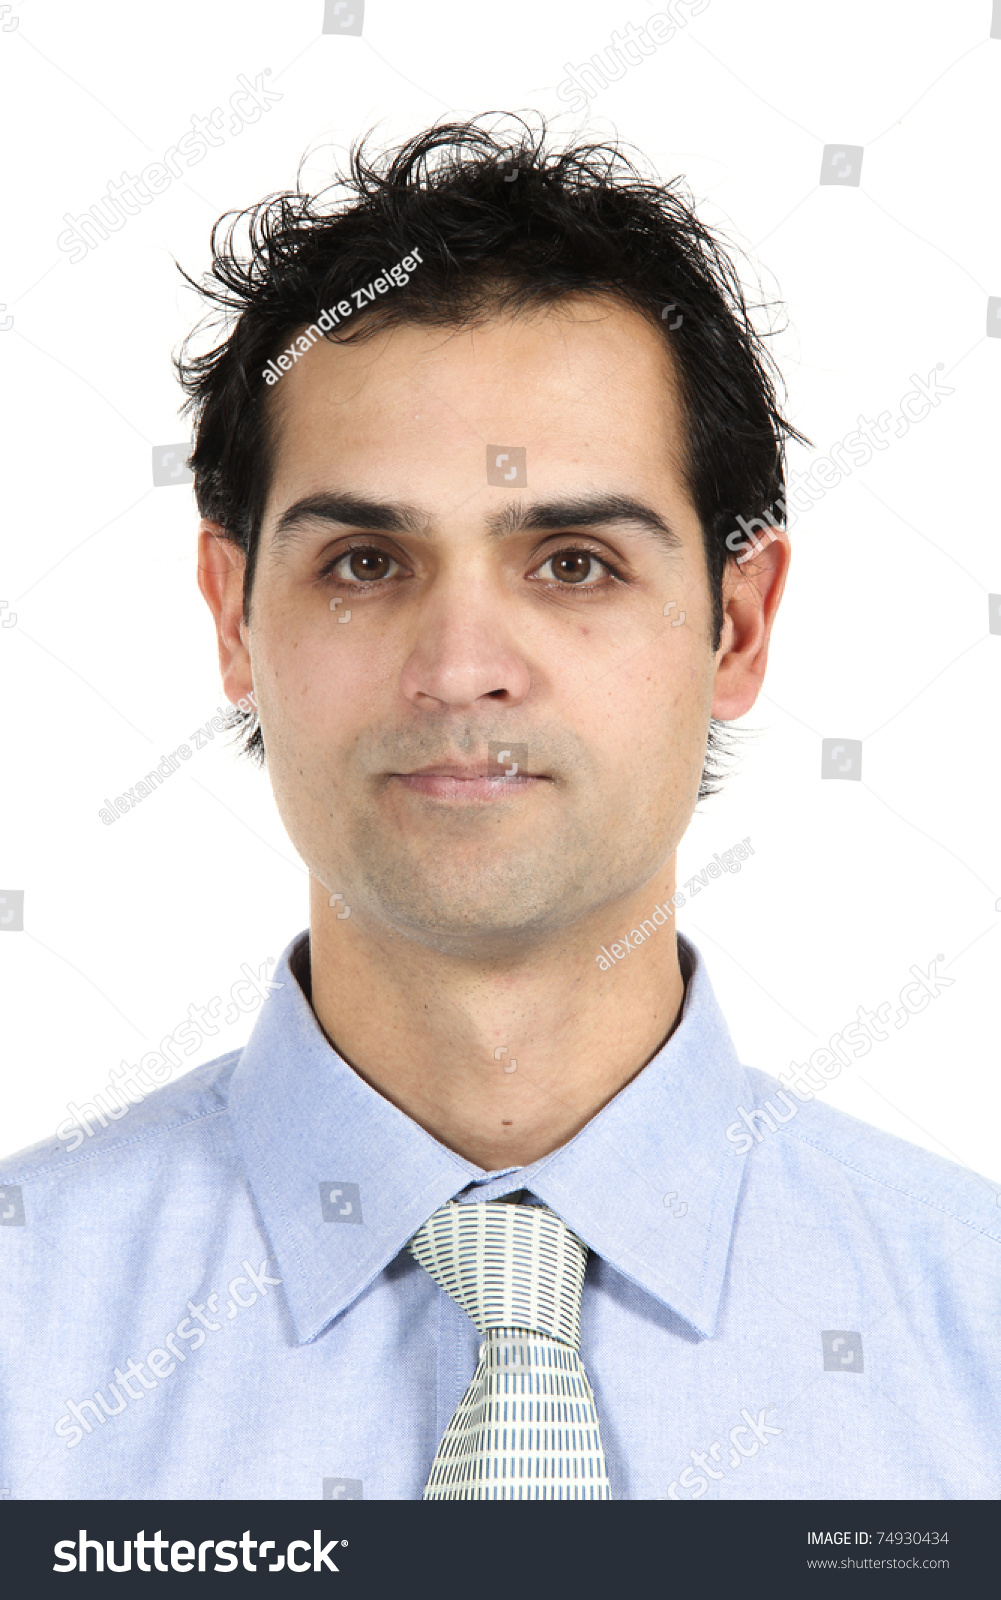 muñeco - Muñeco para calcular la estatura Stock-photo-close-up-young-businessman-isolated-on-white-background-74930434